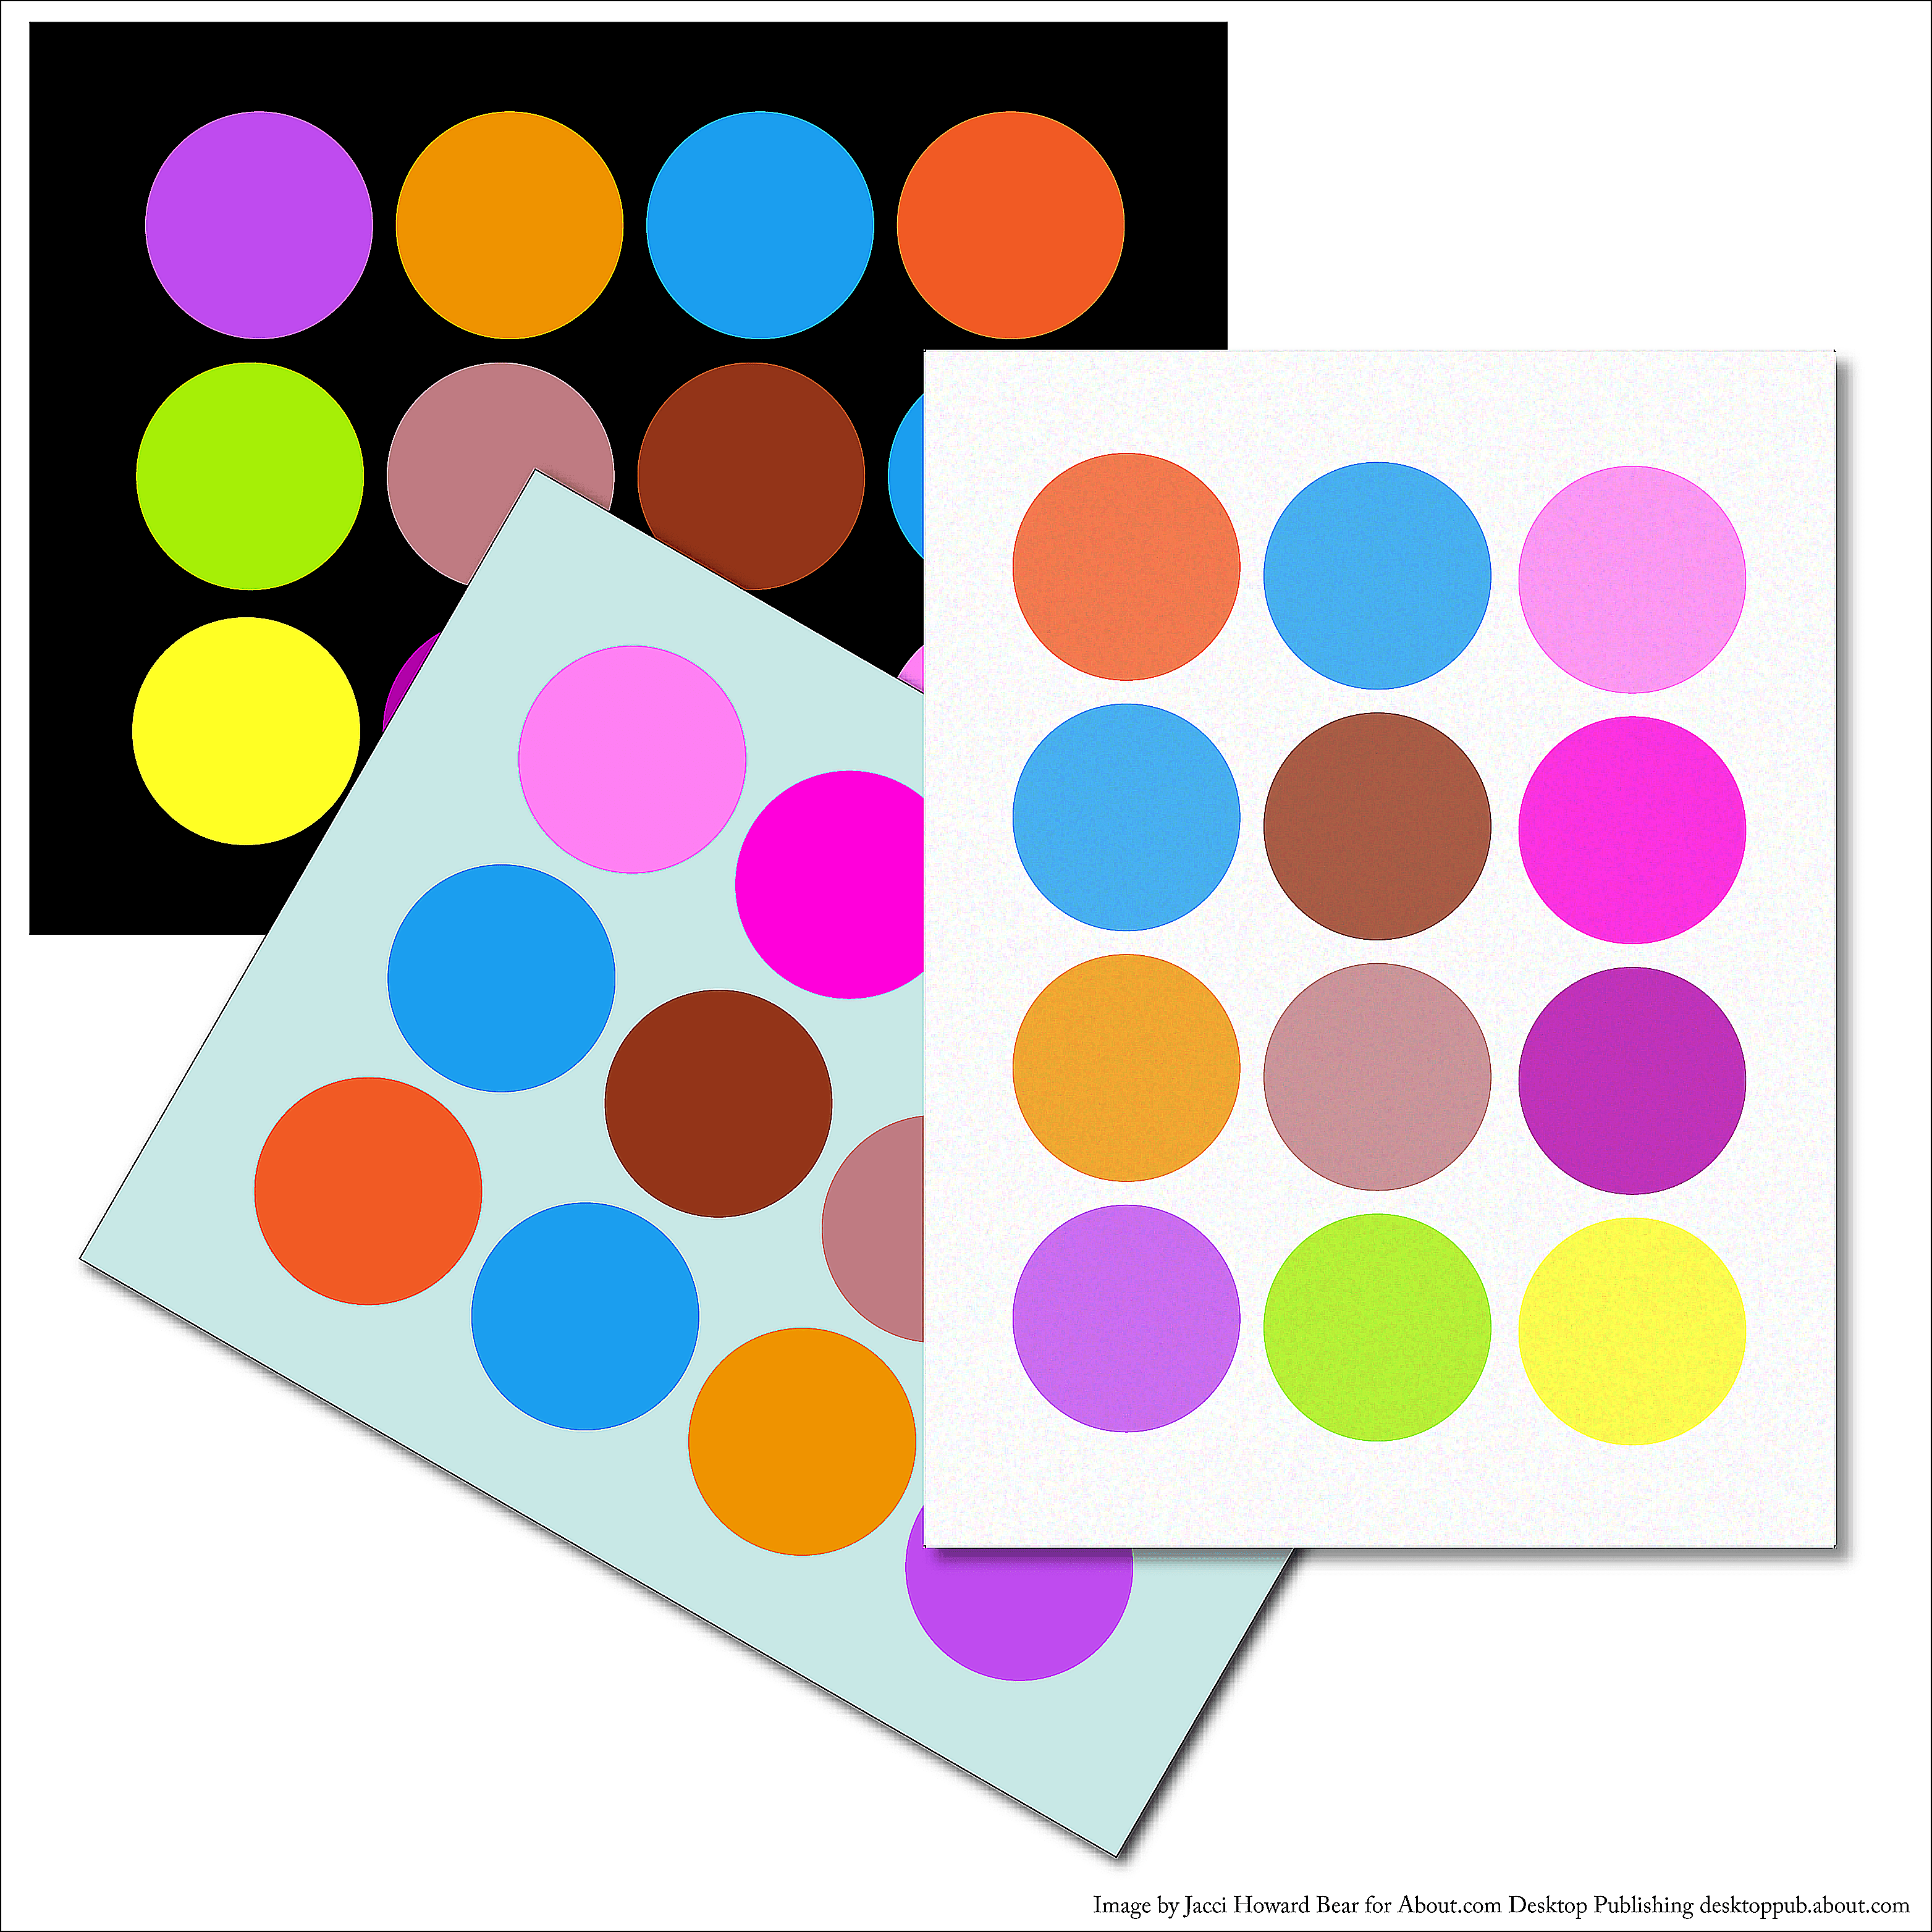 Color circle art publishing - Color Circle Art Publishing 29